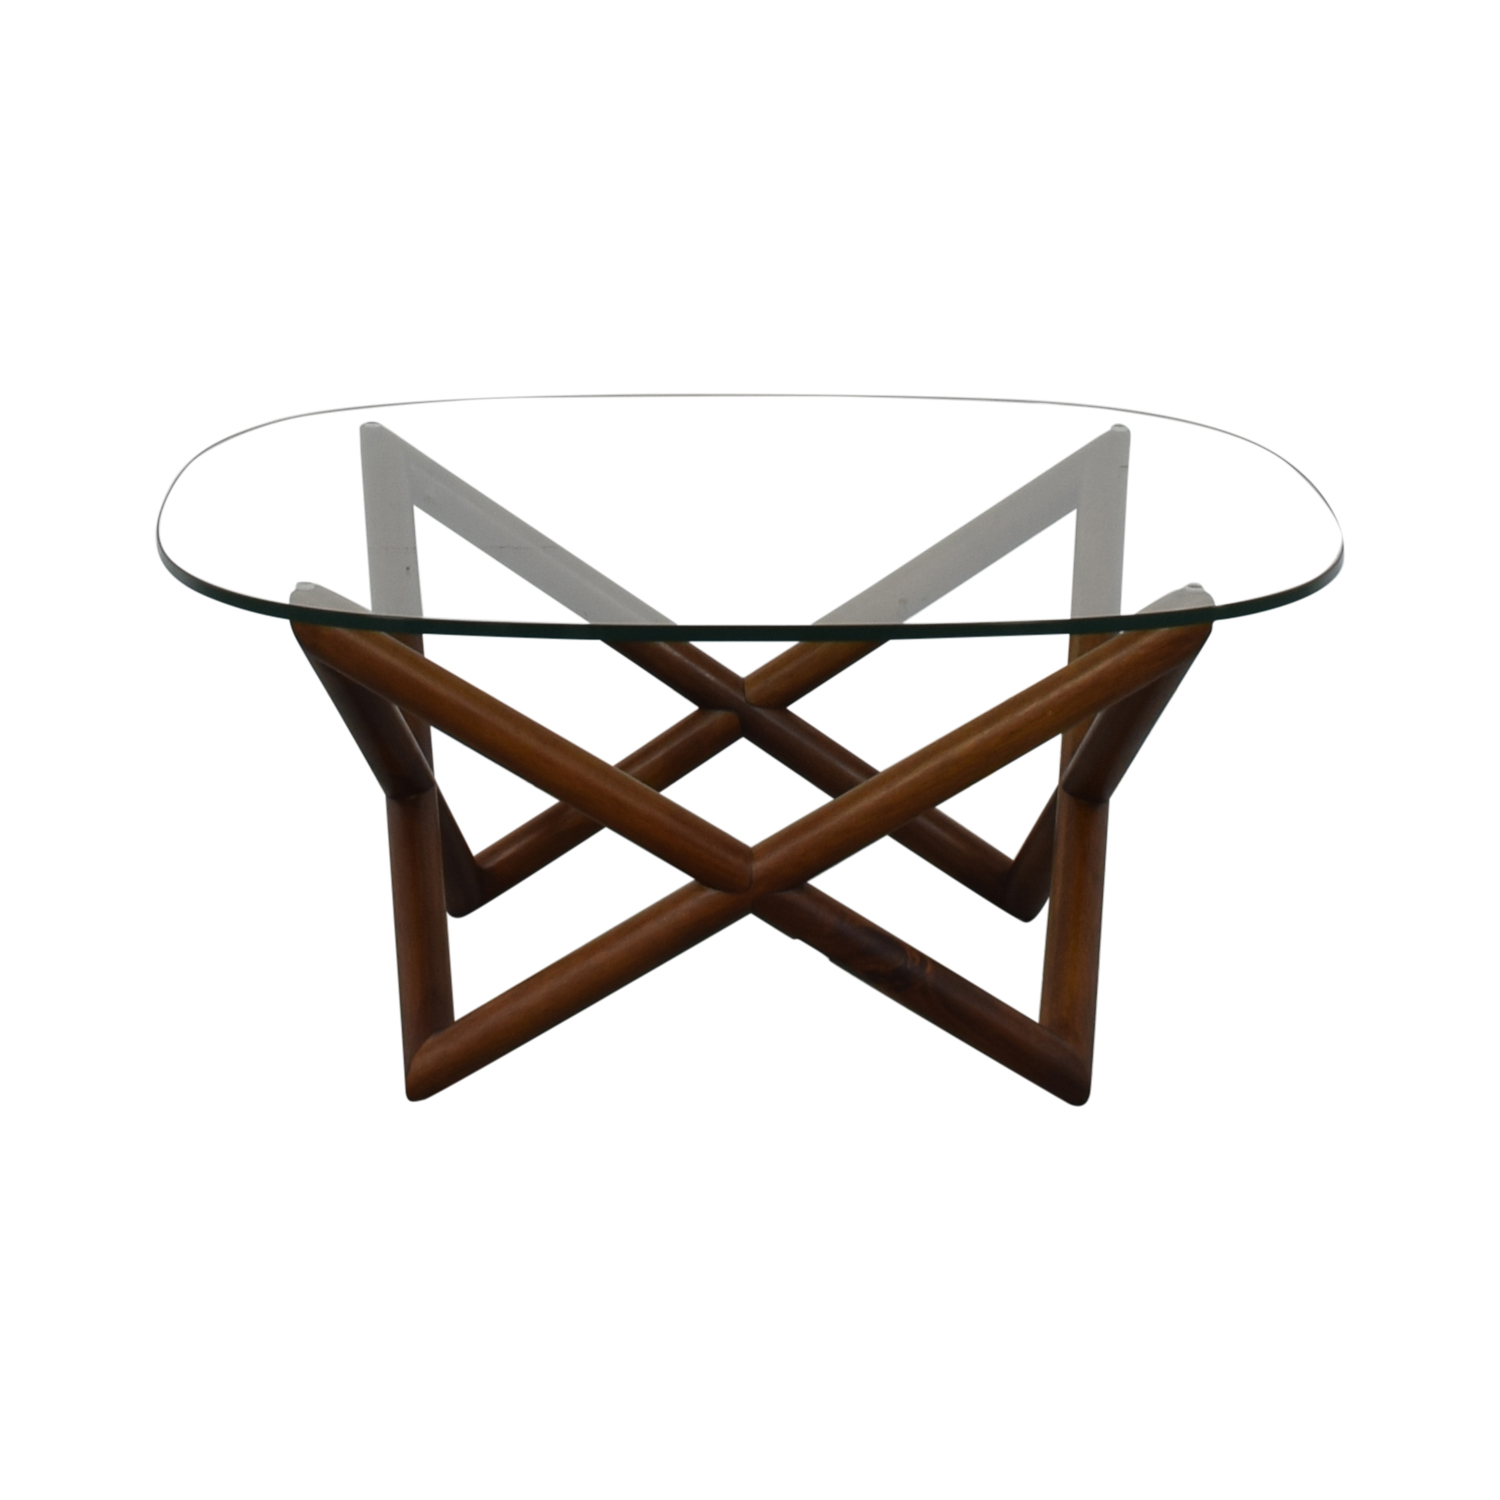 3% OFF - West Elm West Elm Spindle Glass Coffee Table / Tables